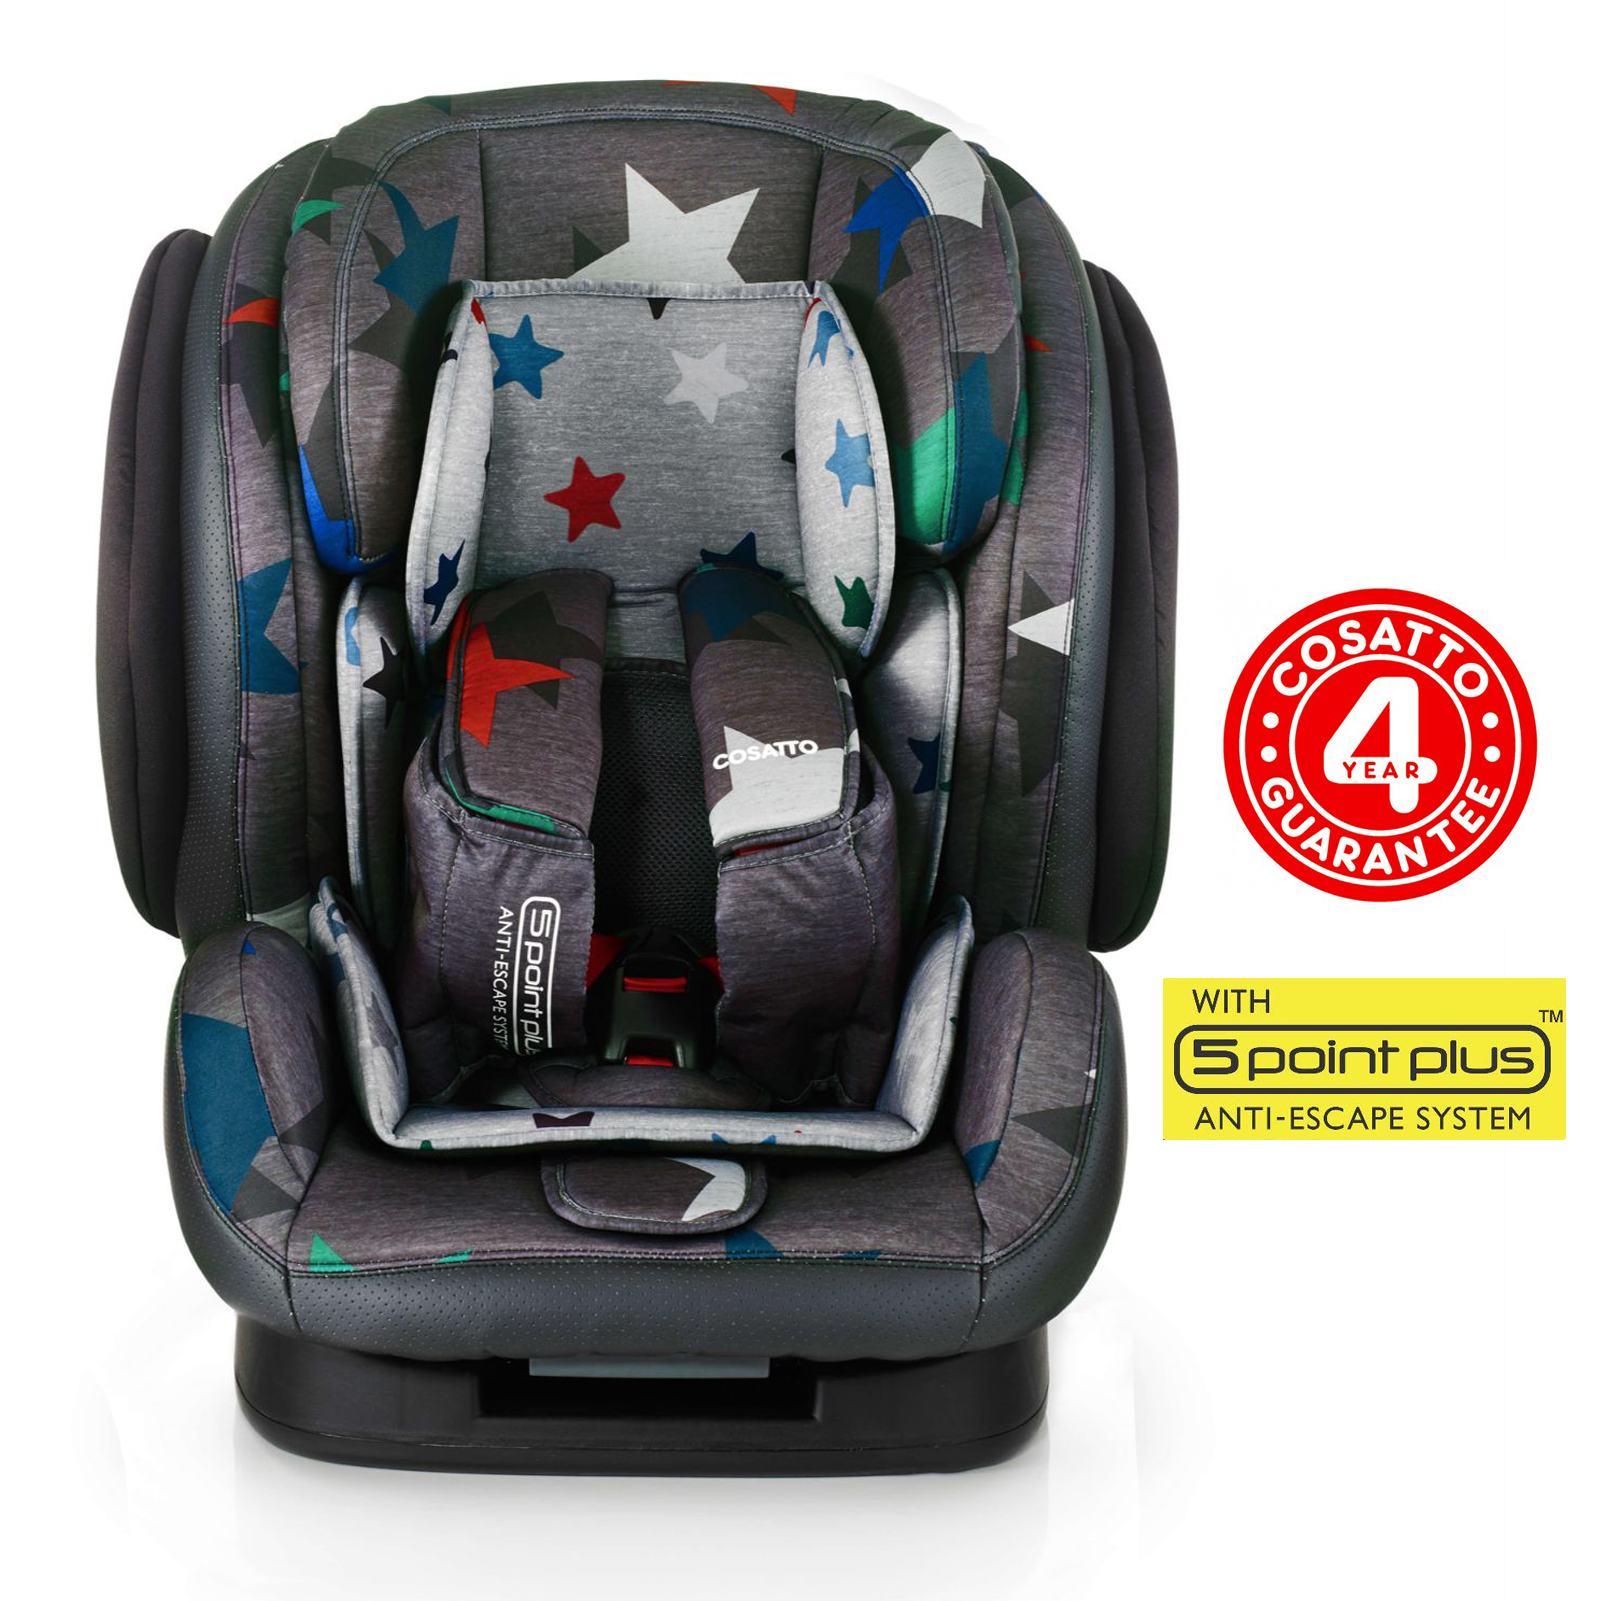 Cosatto Hug Group 123 Recline Car Seat - Grey Megastars  sc 1 th 225 & Cosatto Hug Group 123 Recline Car Seat - Grey Megastars | Buy at ... islam-shia.org